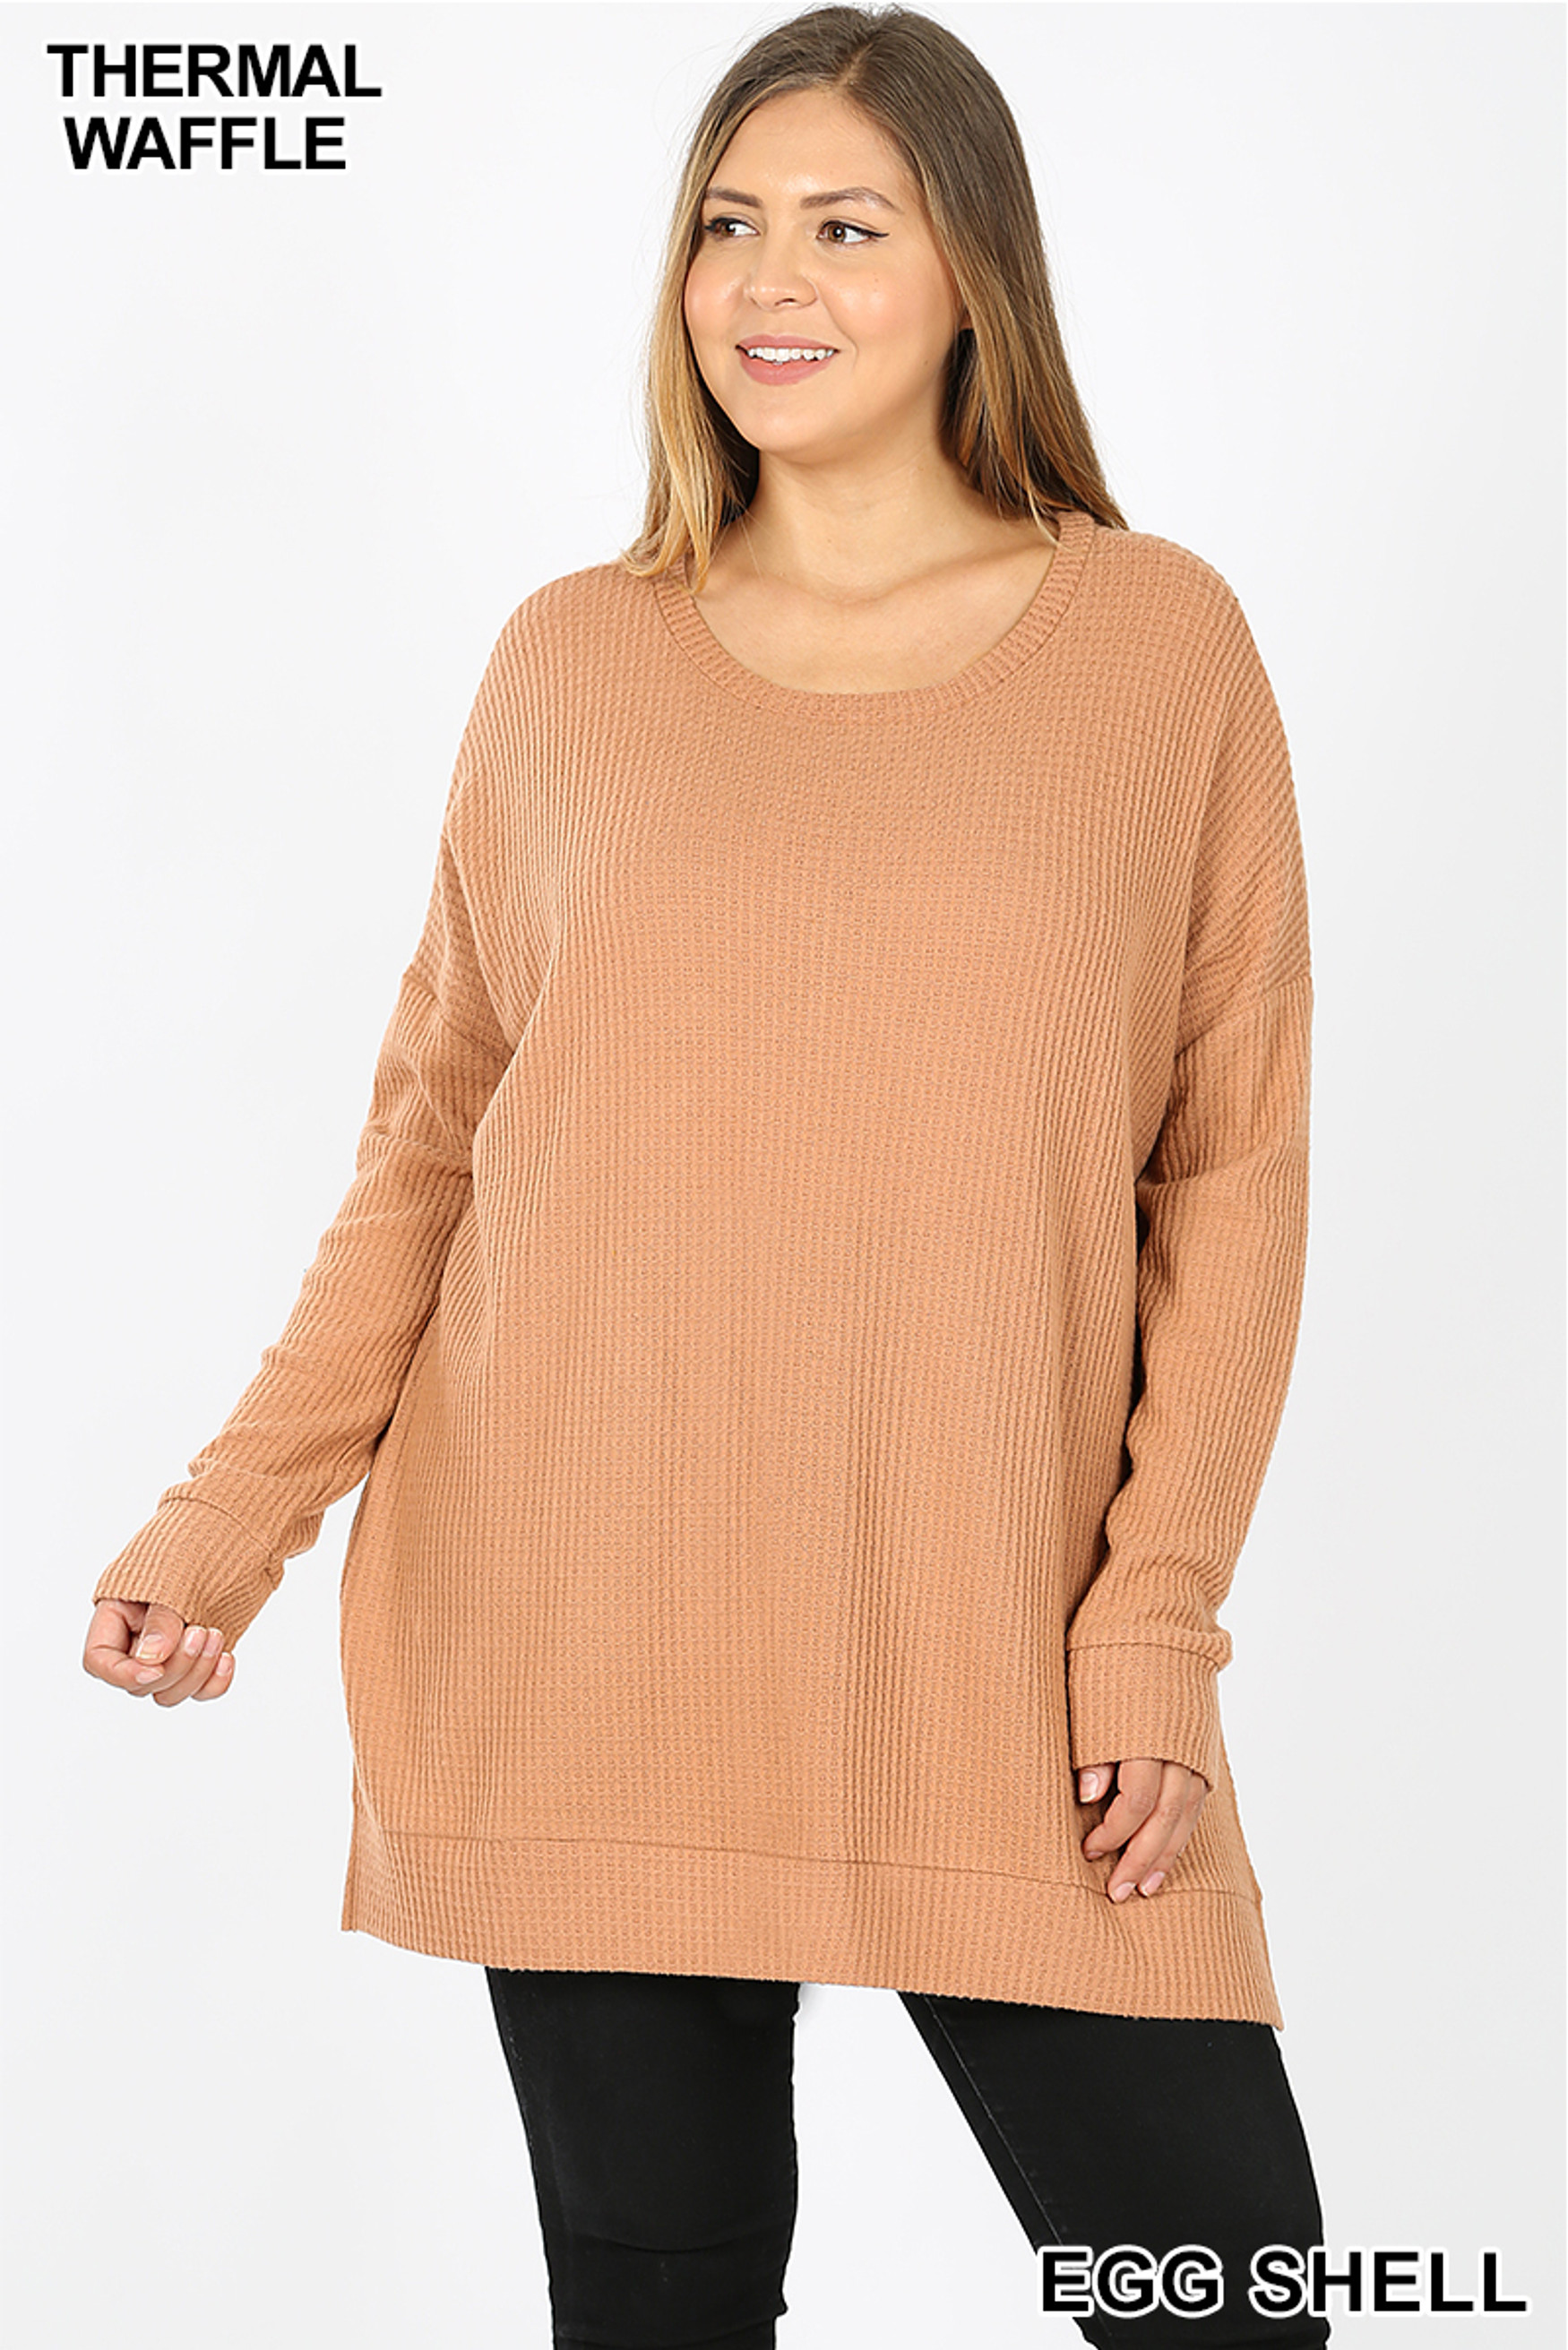 Front image of Eggshell Brushed Thermal Waffle Knit Round Neck Plus Size Sweater